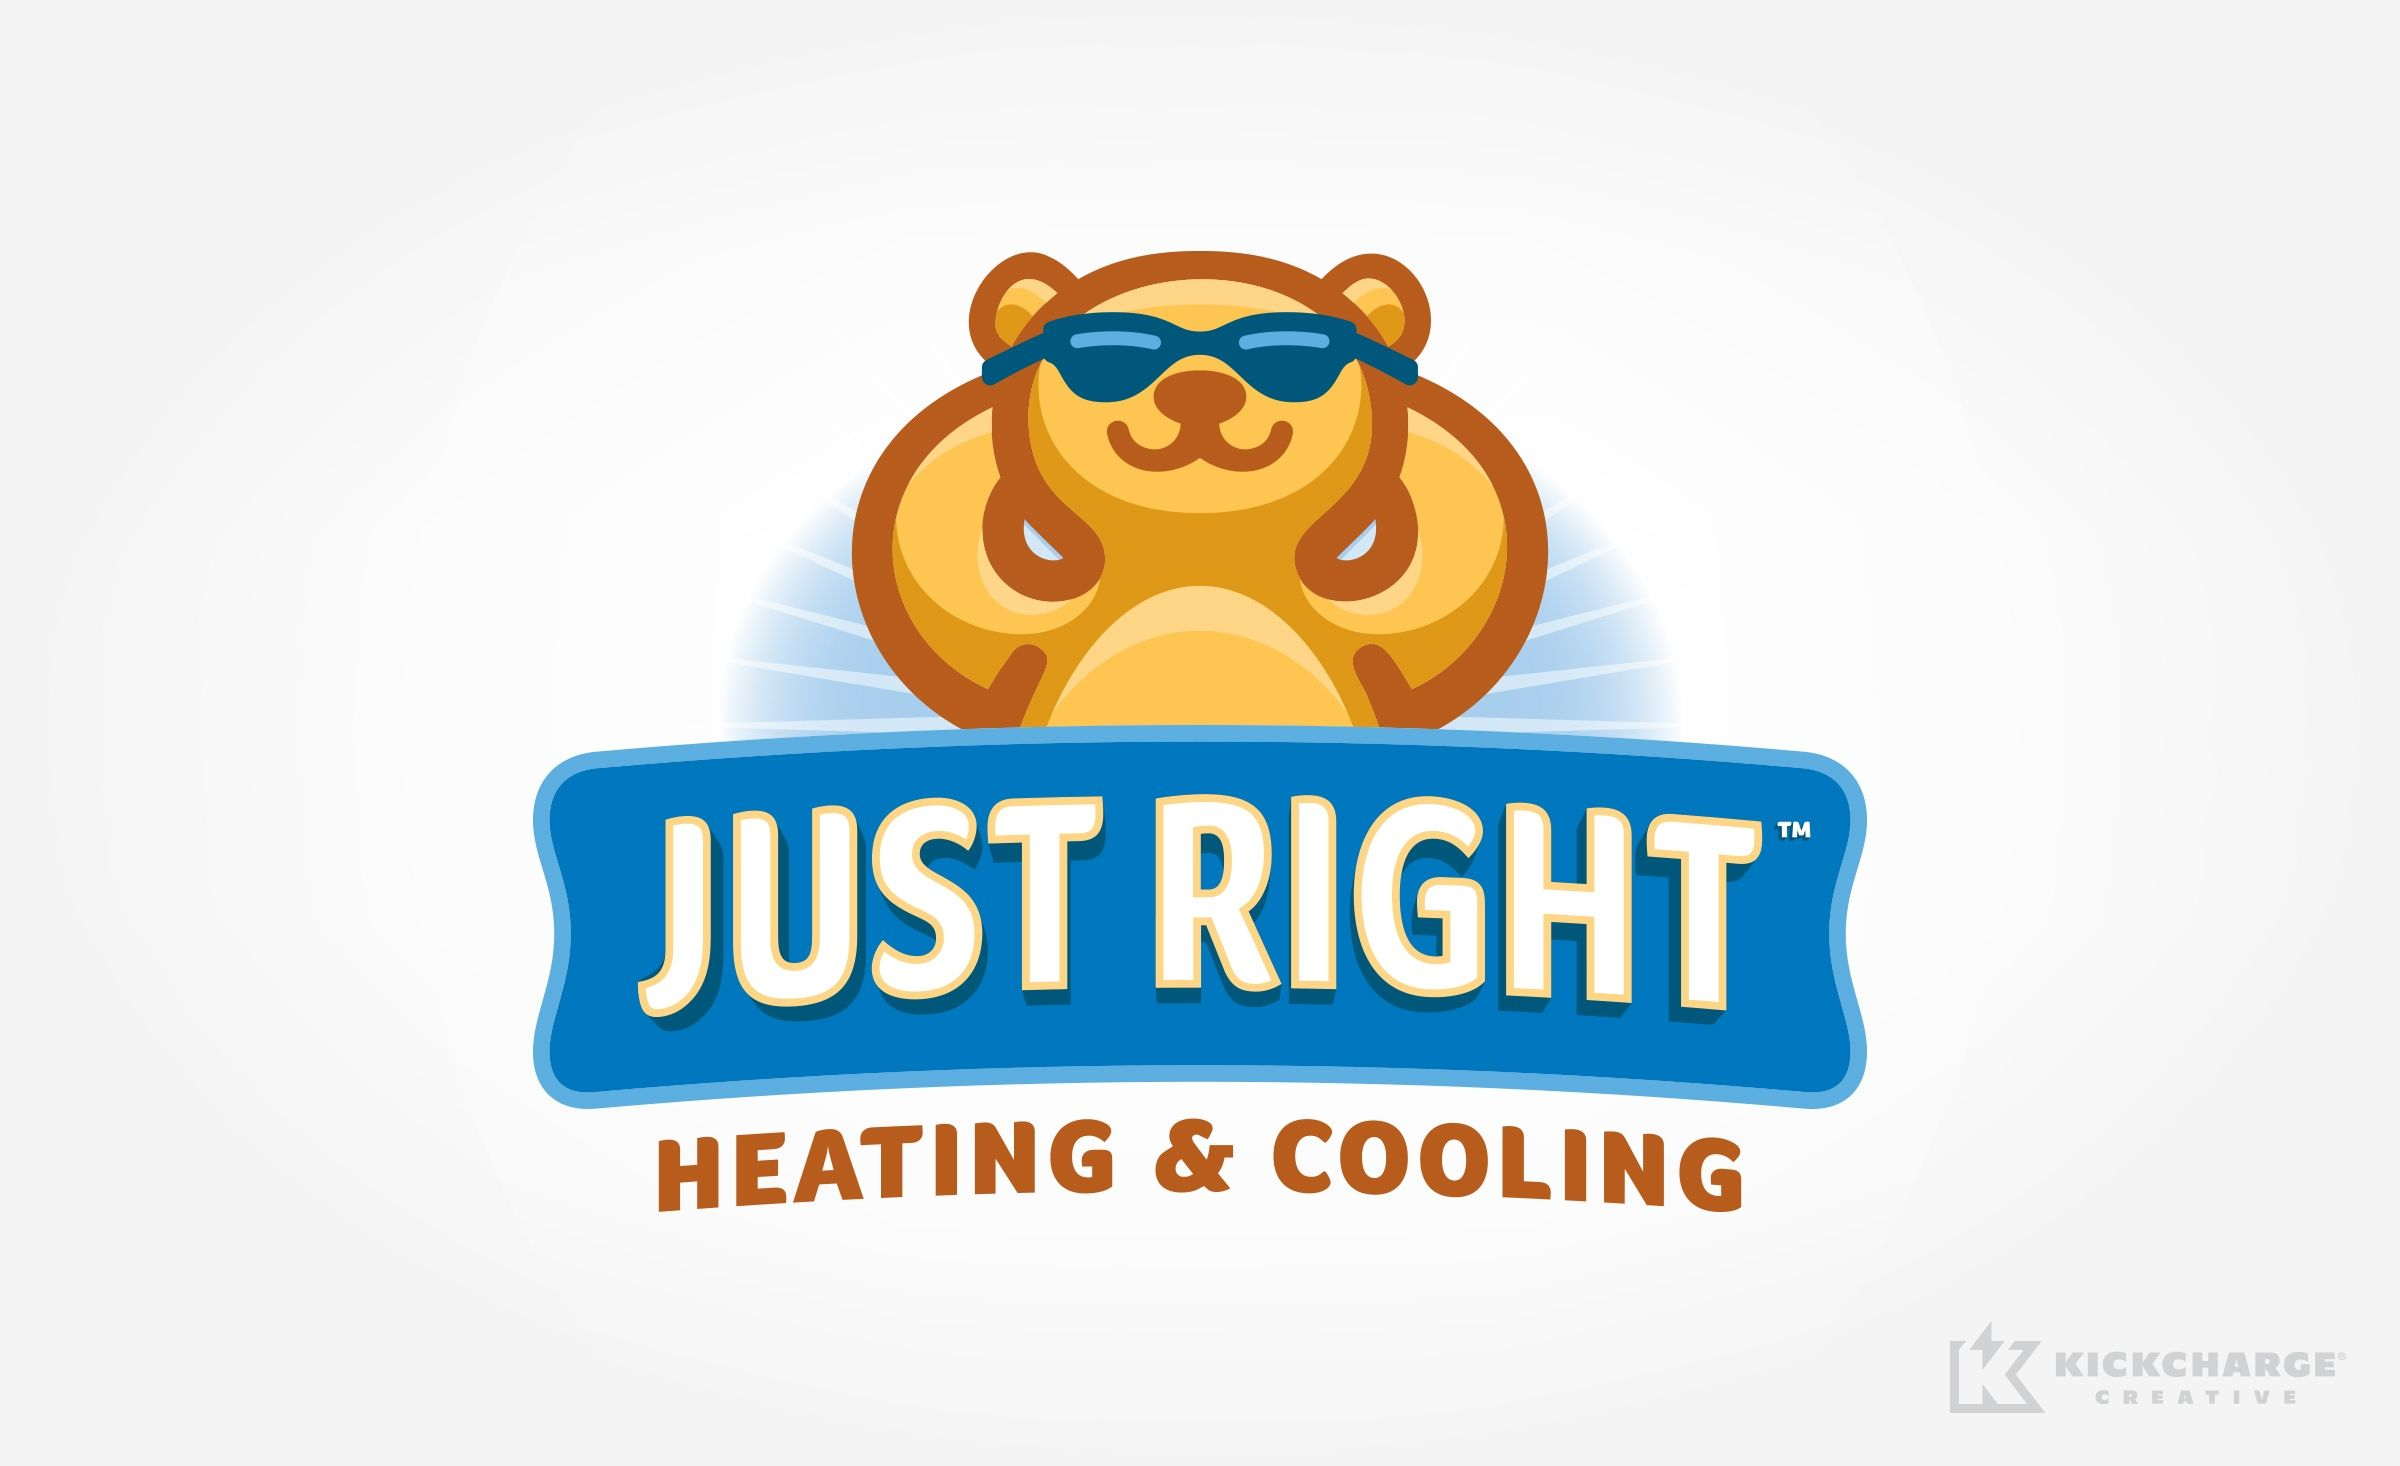 Just Right Heating Cooling Kickcharge Creative With Images